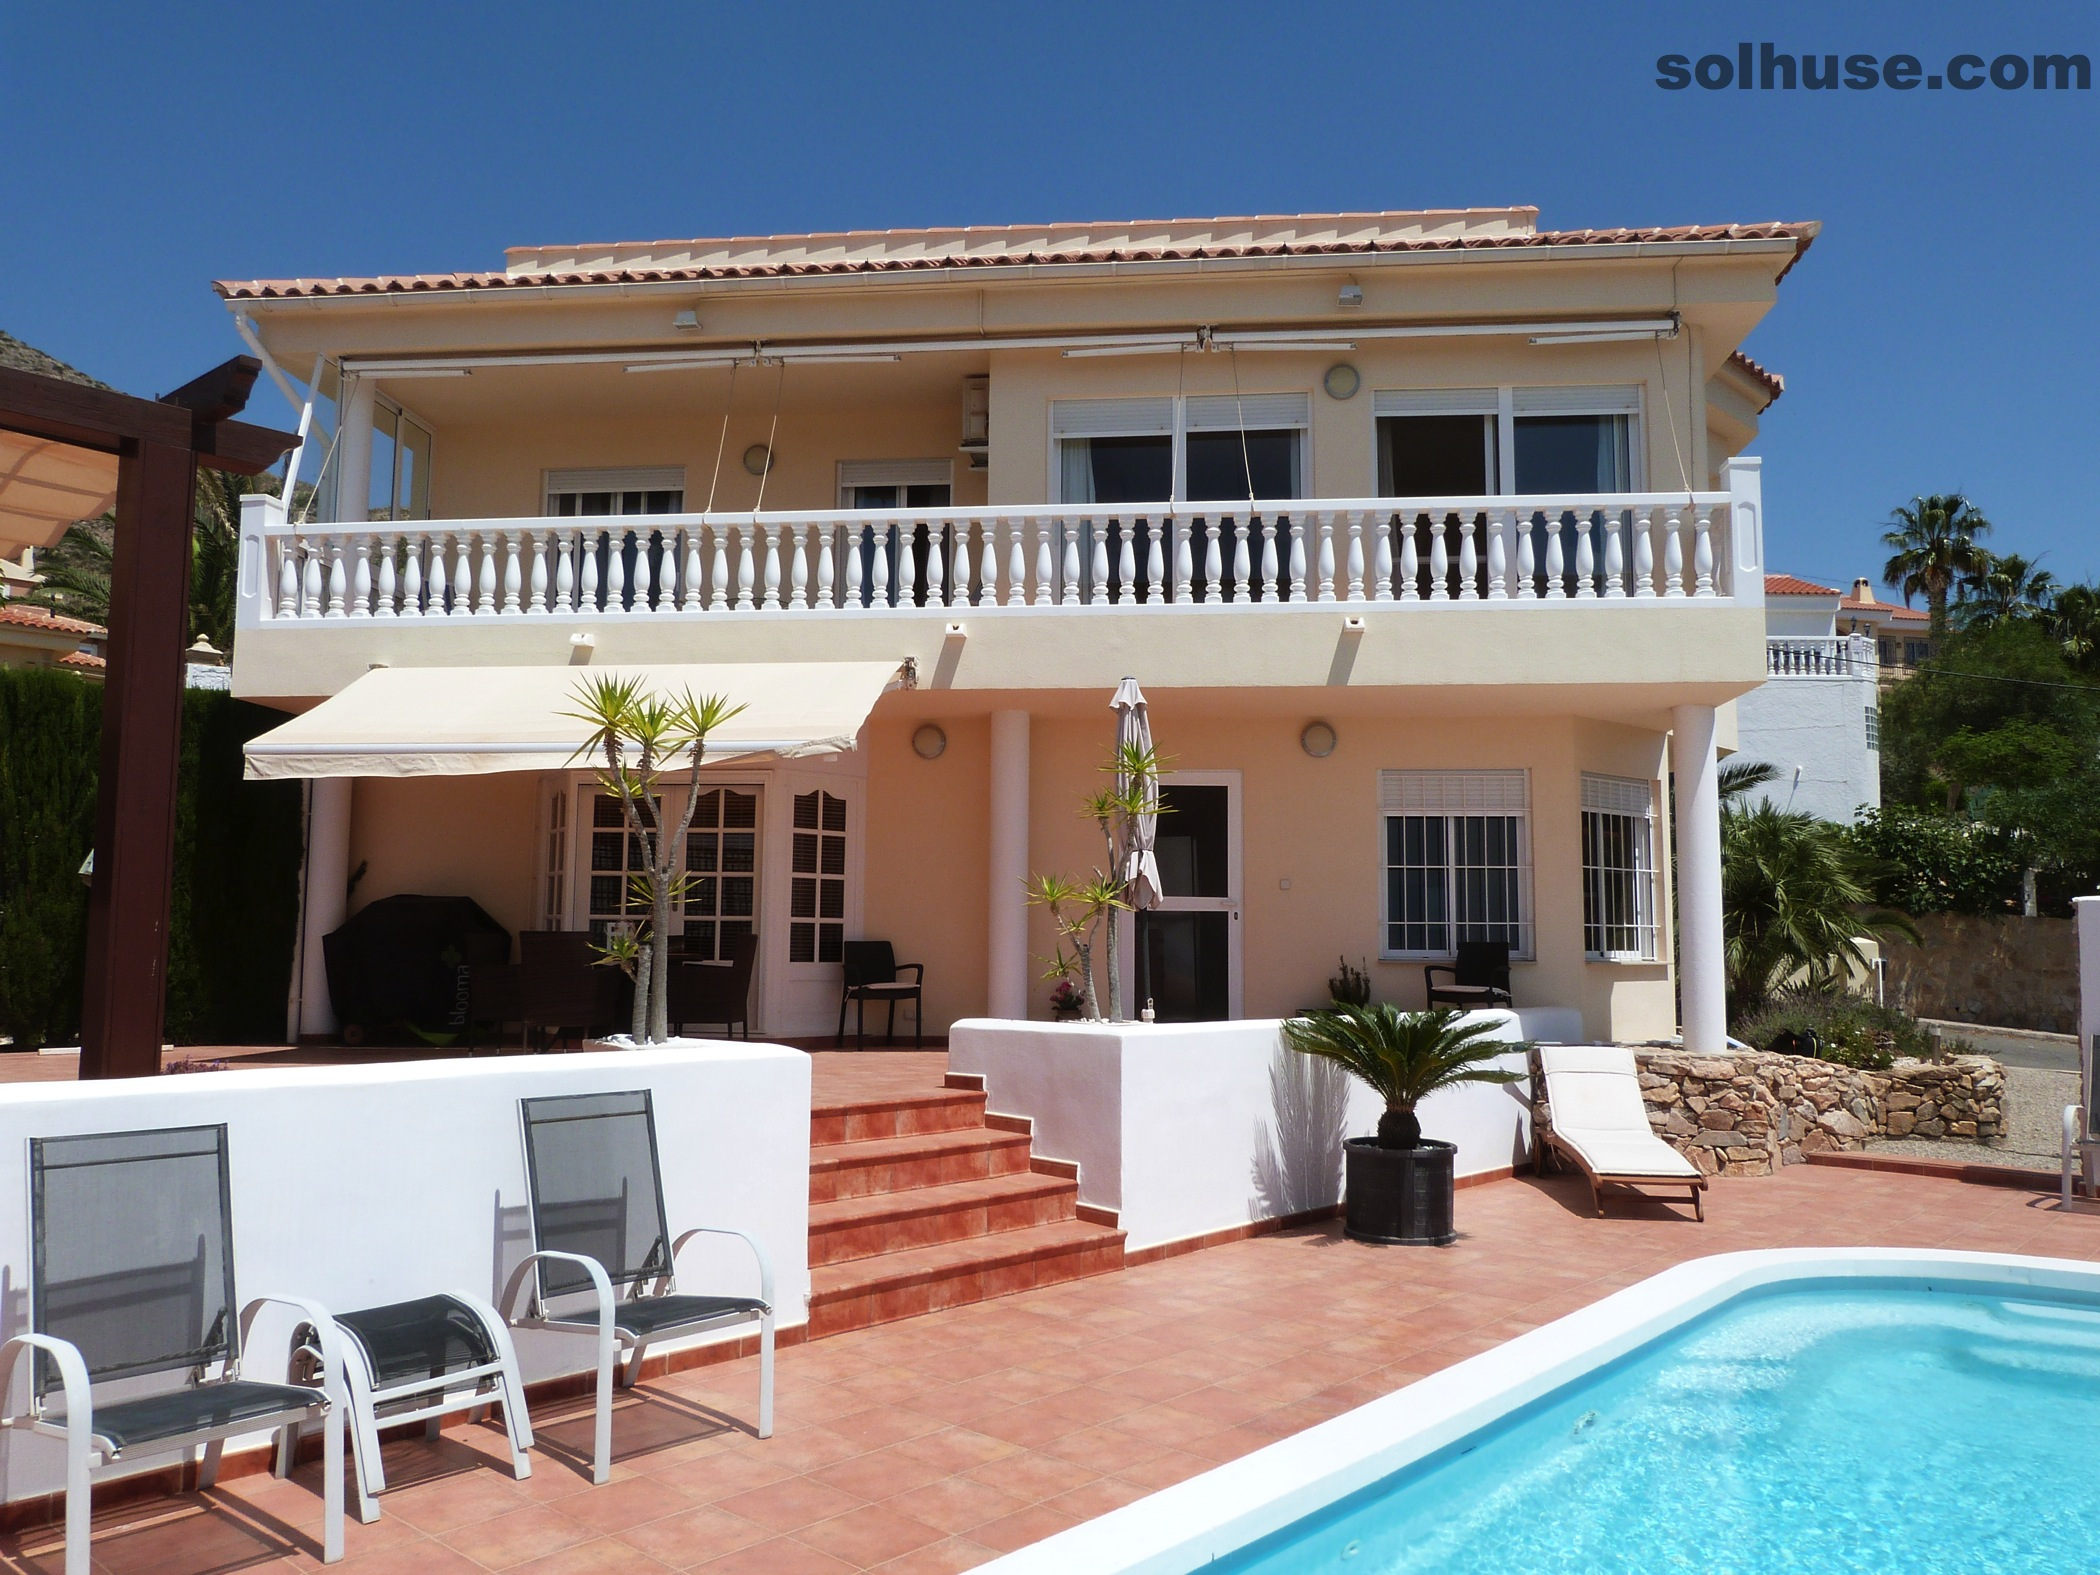 LUXURY DETACHED 4 BED, 3 BATH VILLA, POOL & OUTSTANDING SEA VIEWS